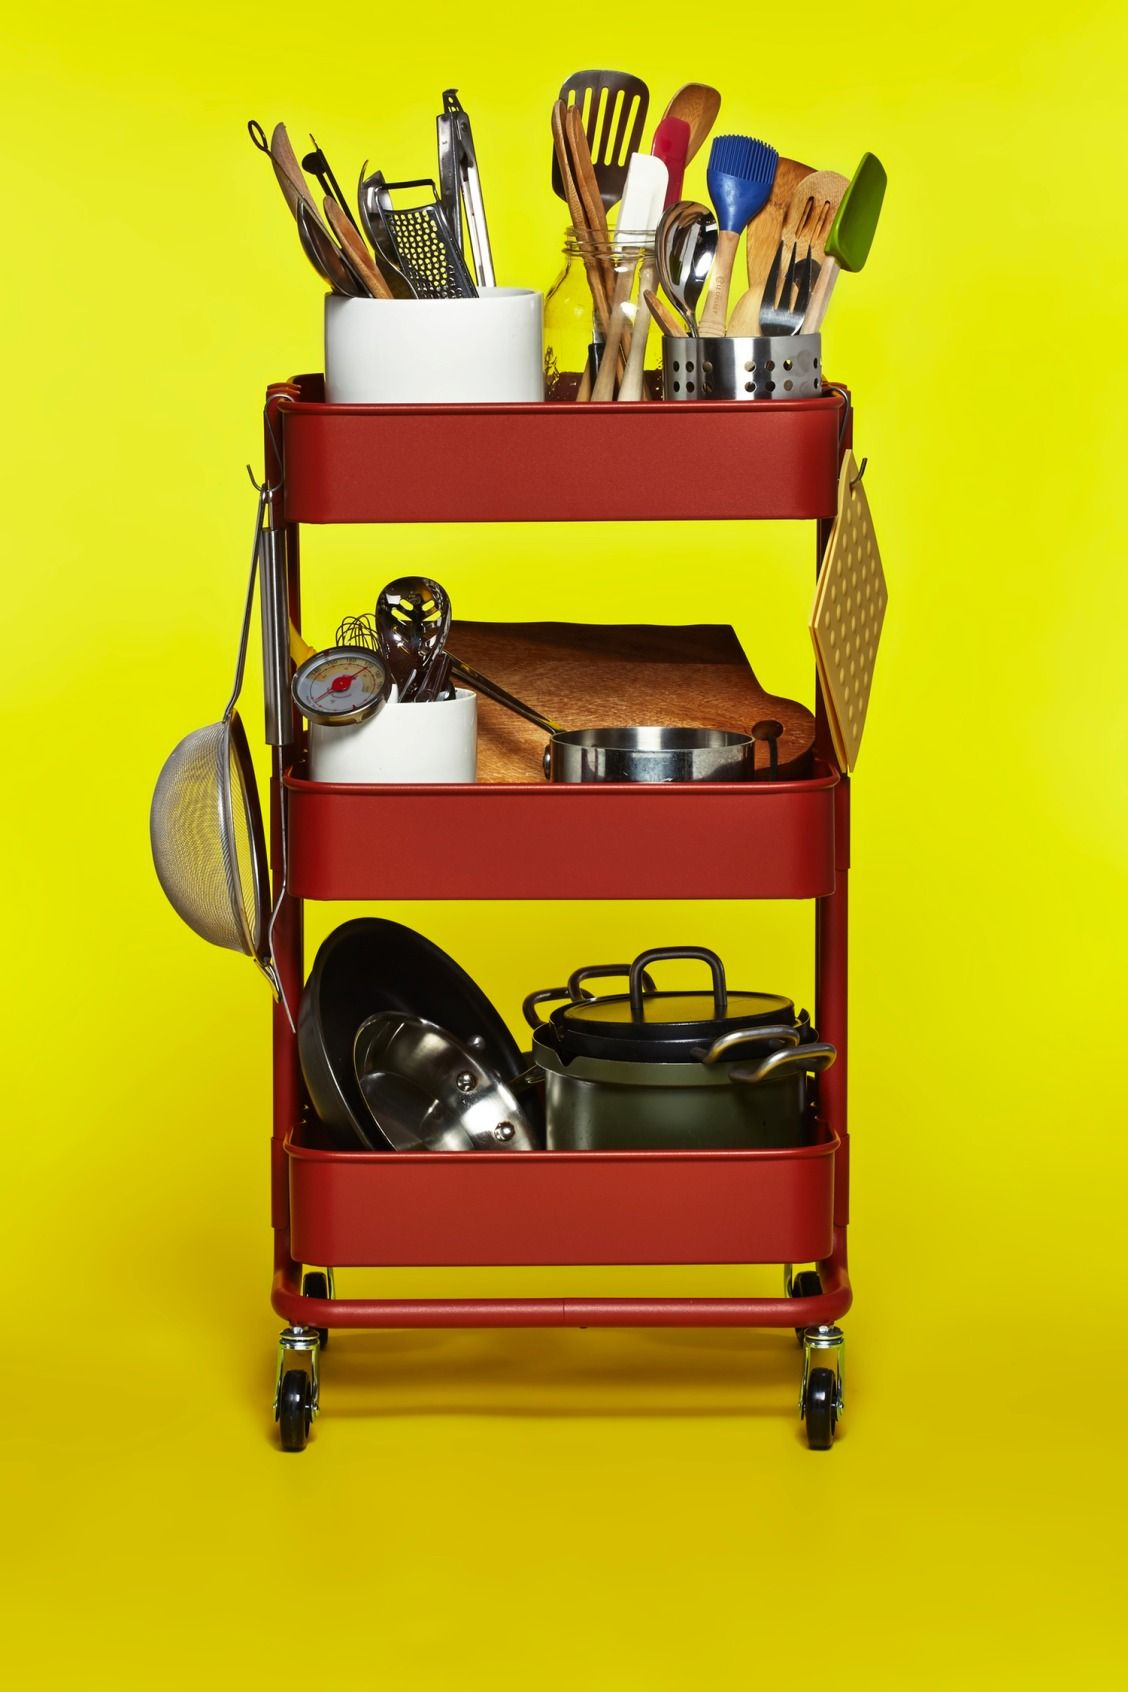 Aufbewahrung Küchenutensilien Ikea The Ikea RÅskog Cart As Mobile Kitchen Tool Box Diy